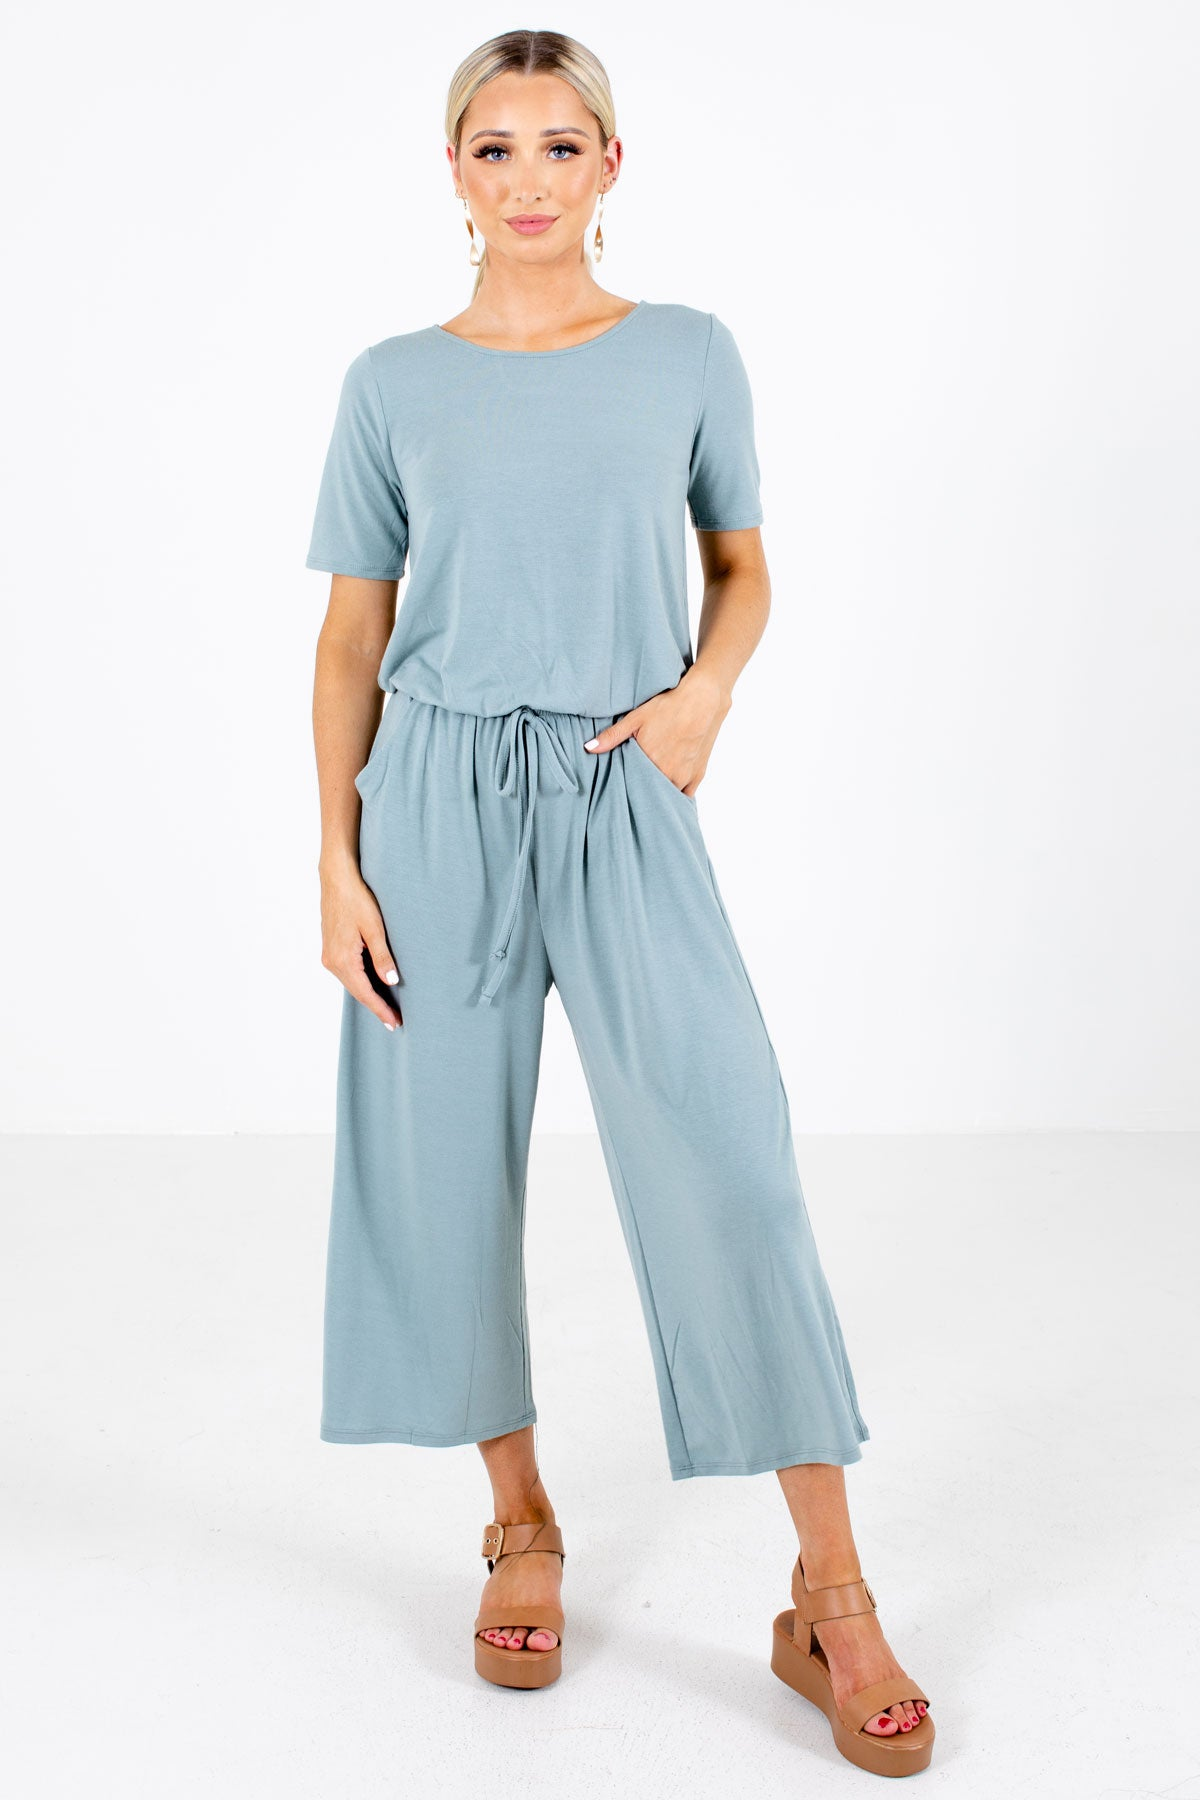 Green Drawstring Waistline Boutique Jumpsuits for Women